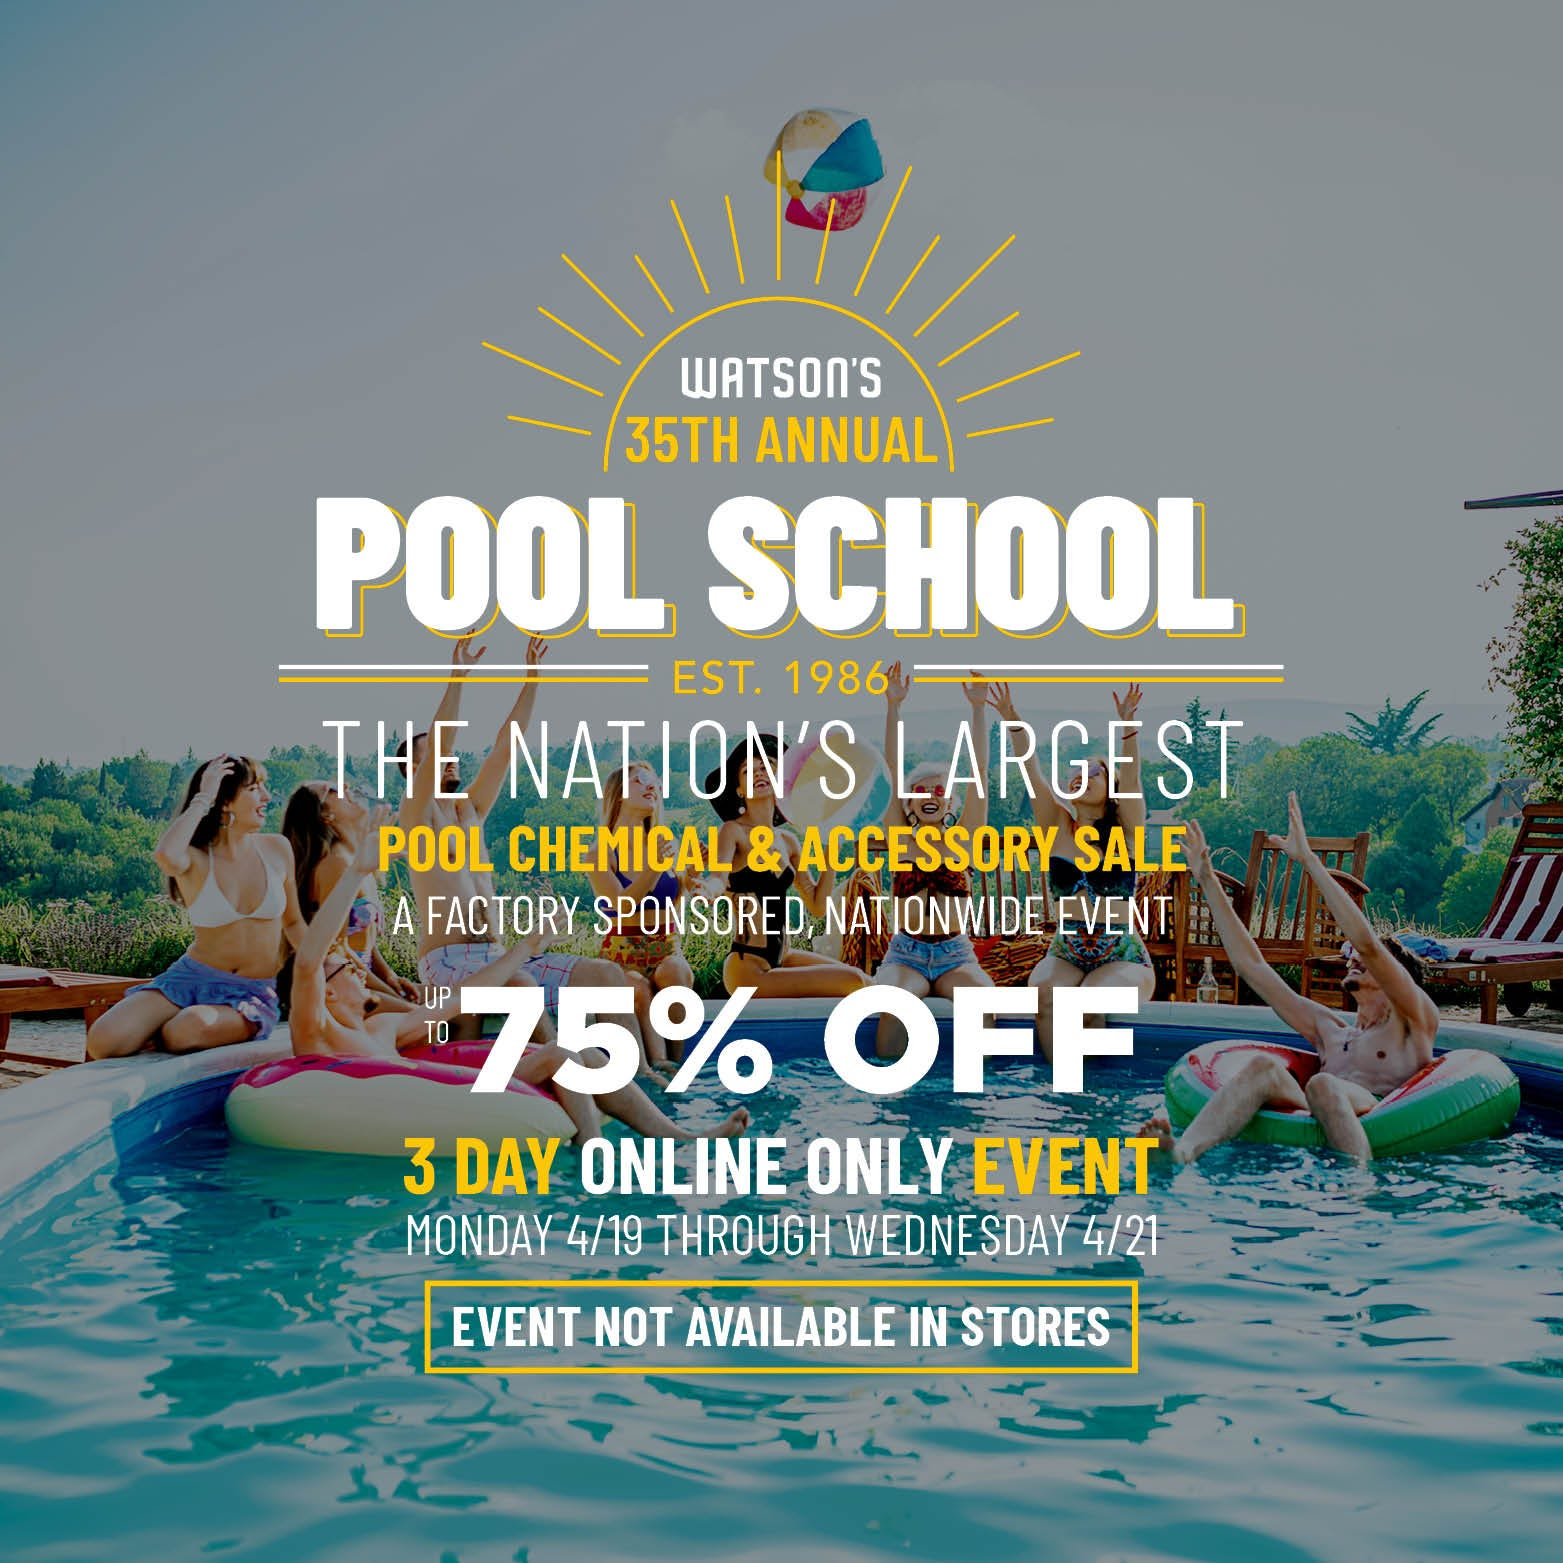 Pool School 2021 The Nation's Largest Chemical and Accessory Sale Up to 75% Off Online Only Event Not Available In Stores